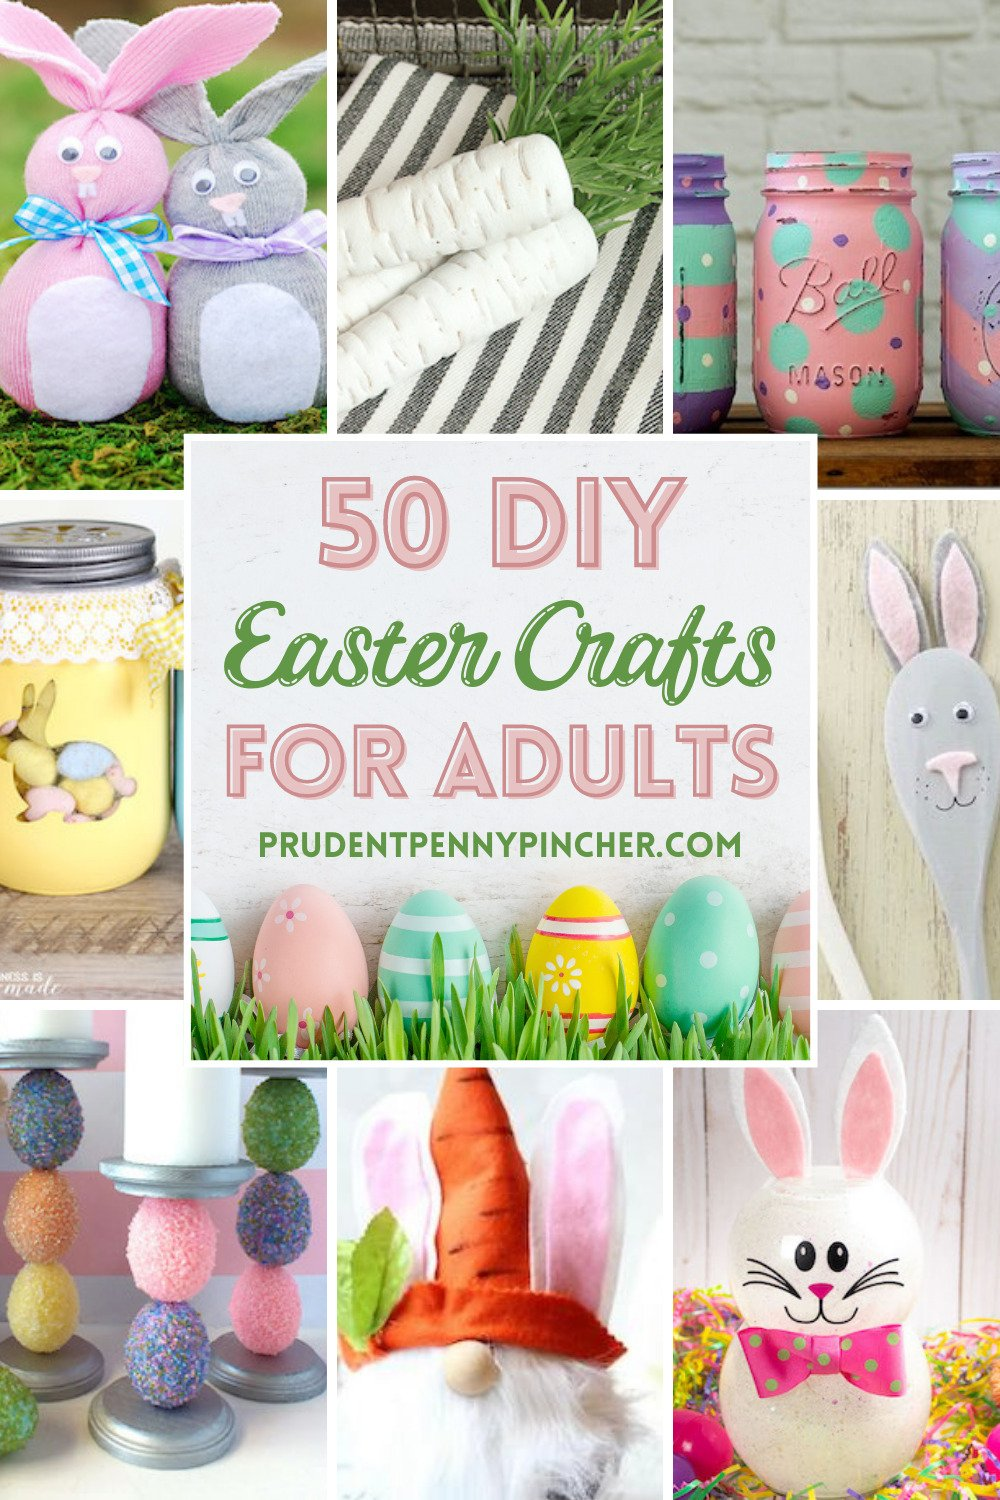 20 DIY Easter Crafts for Adults   Prudent Penny Pincher